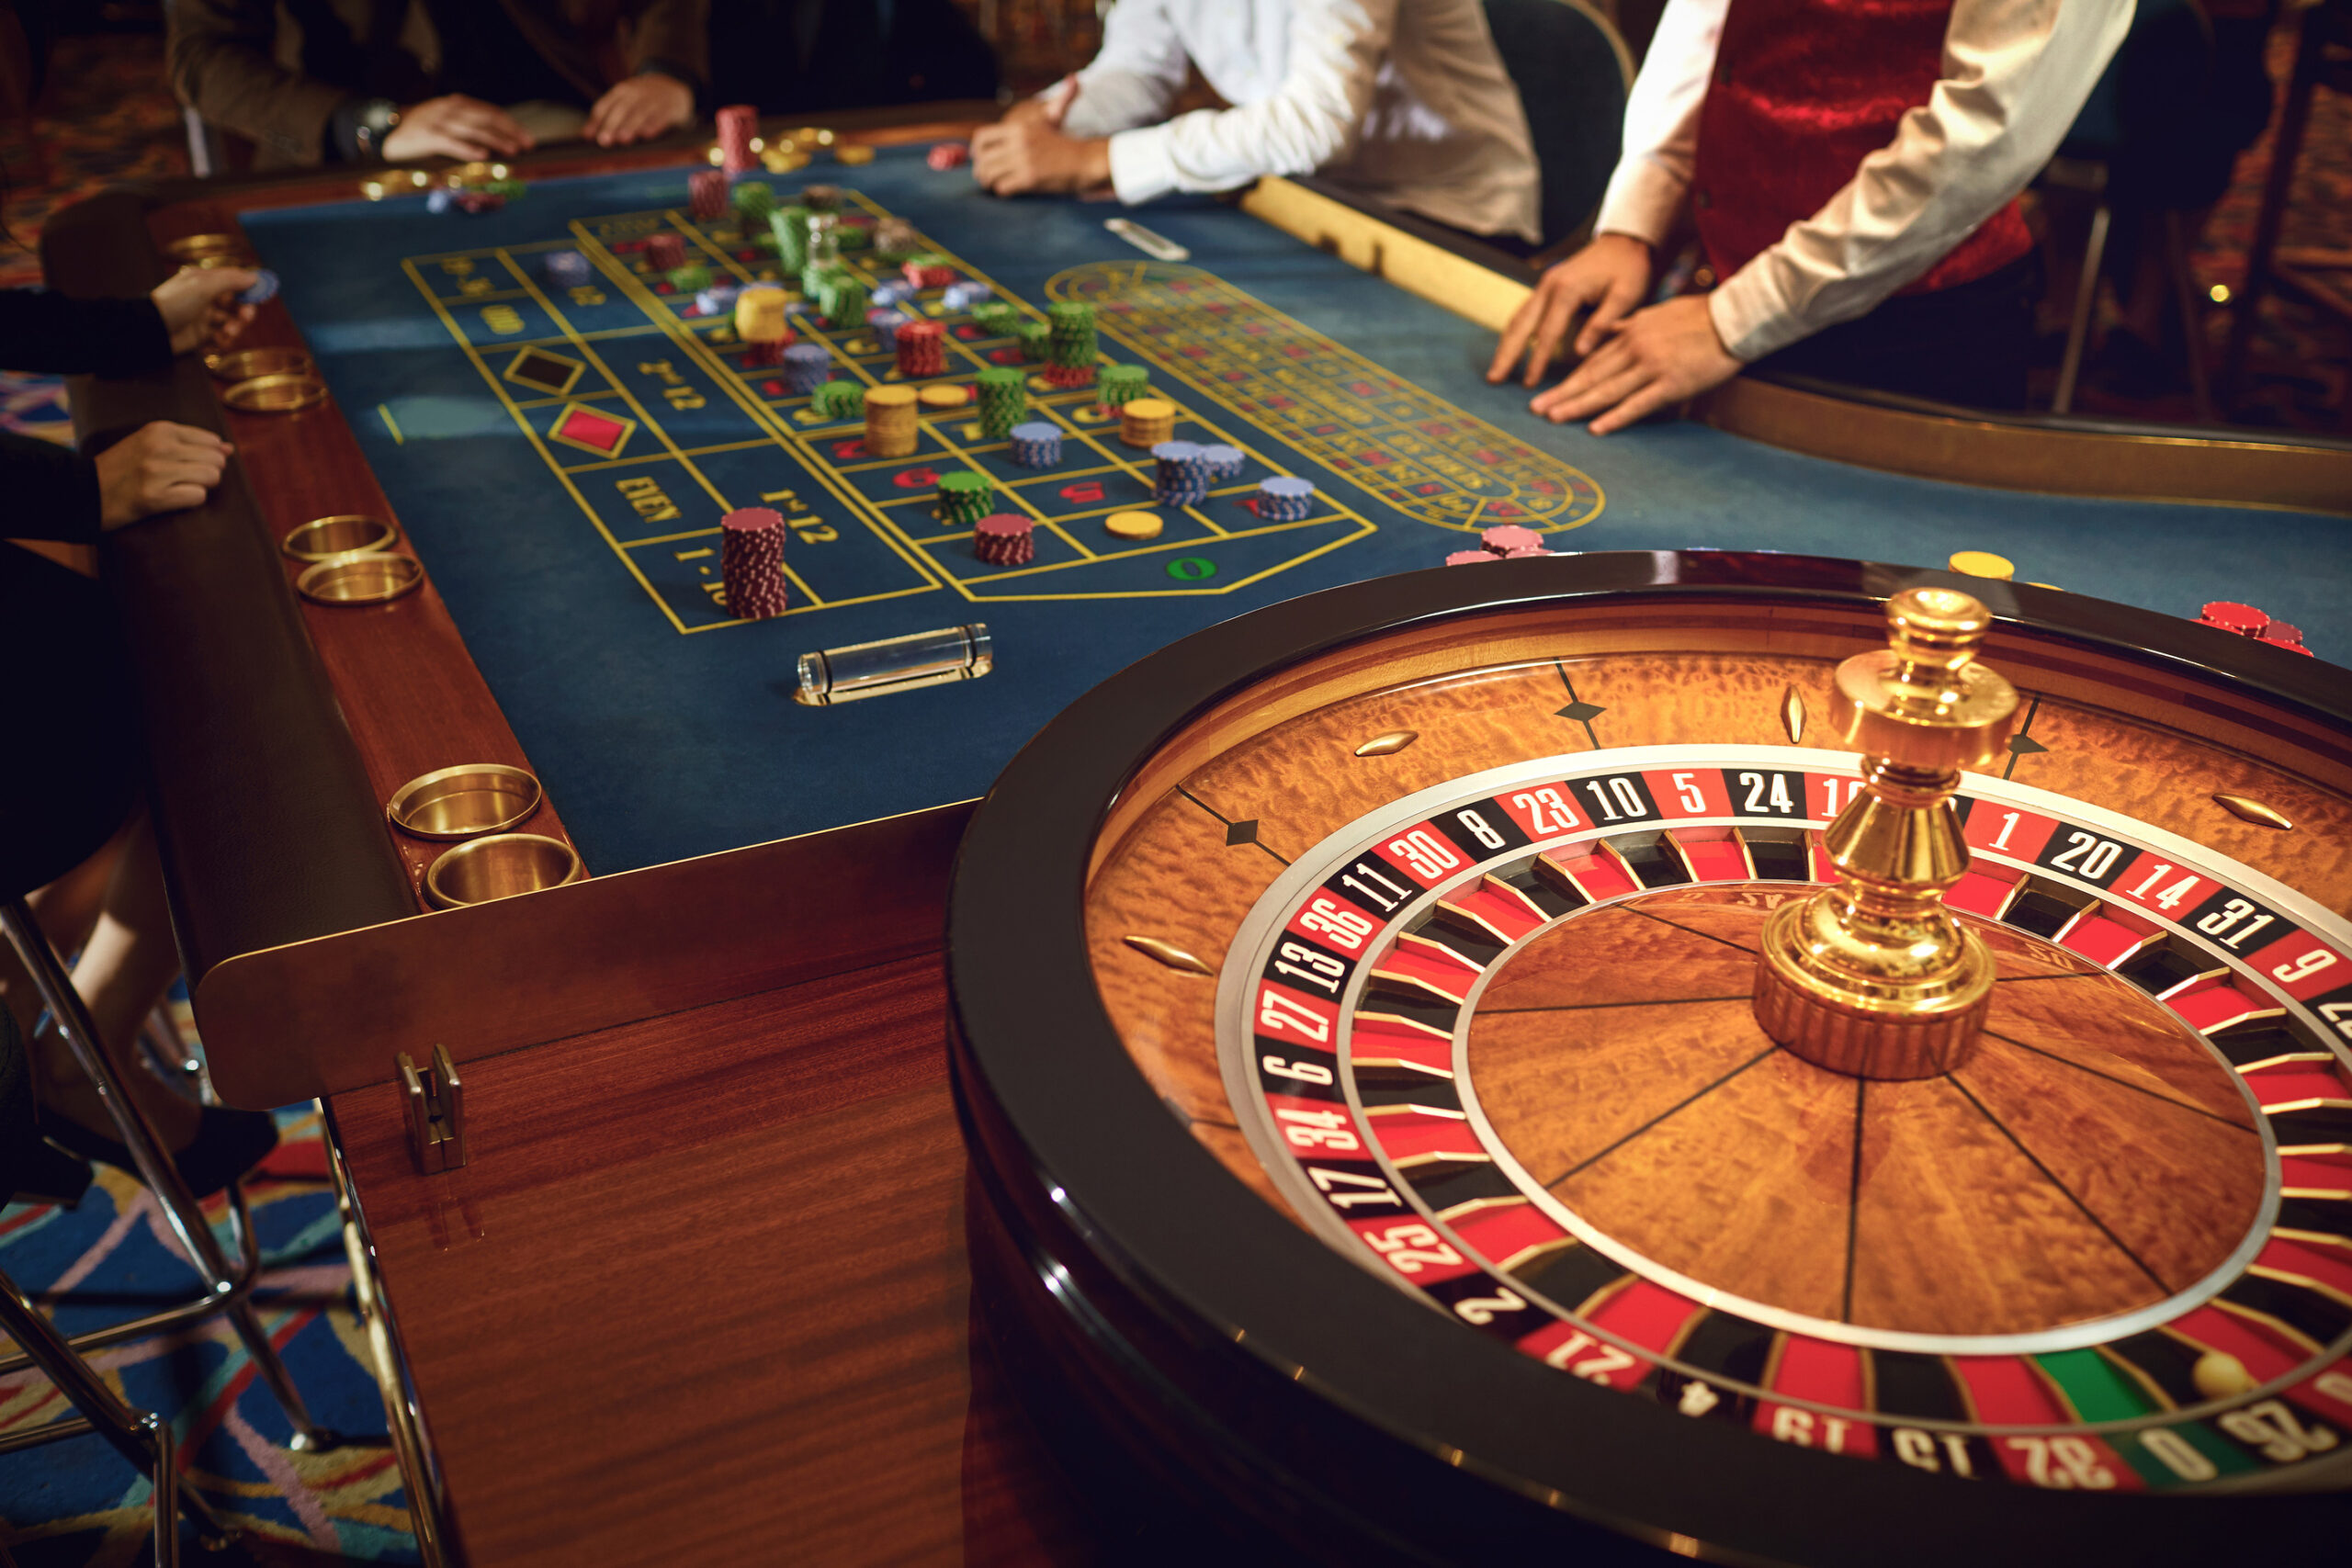 What was the Largest Bet Ever Made?